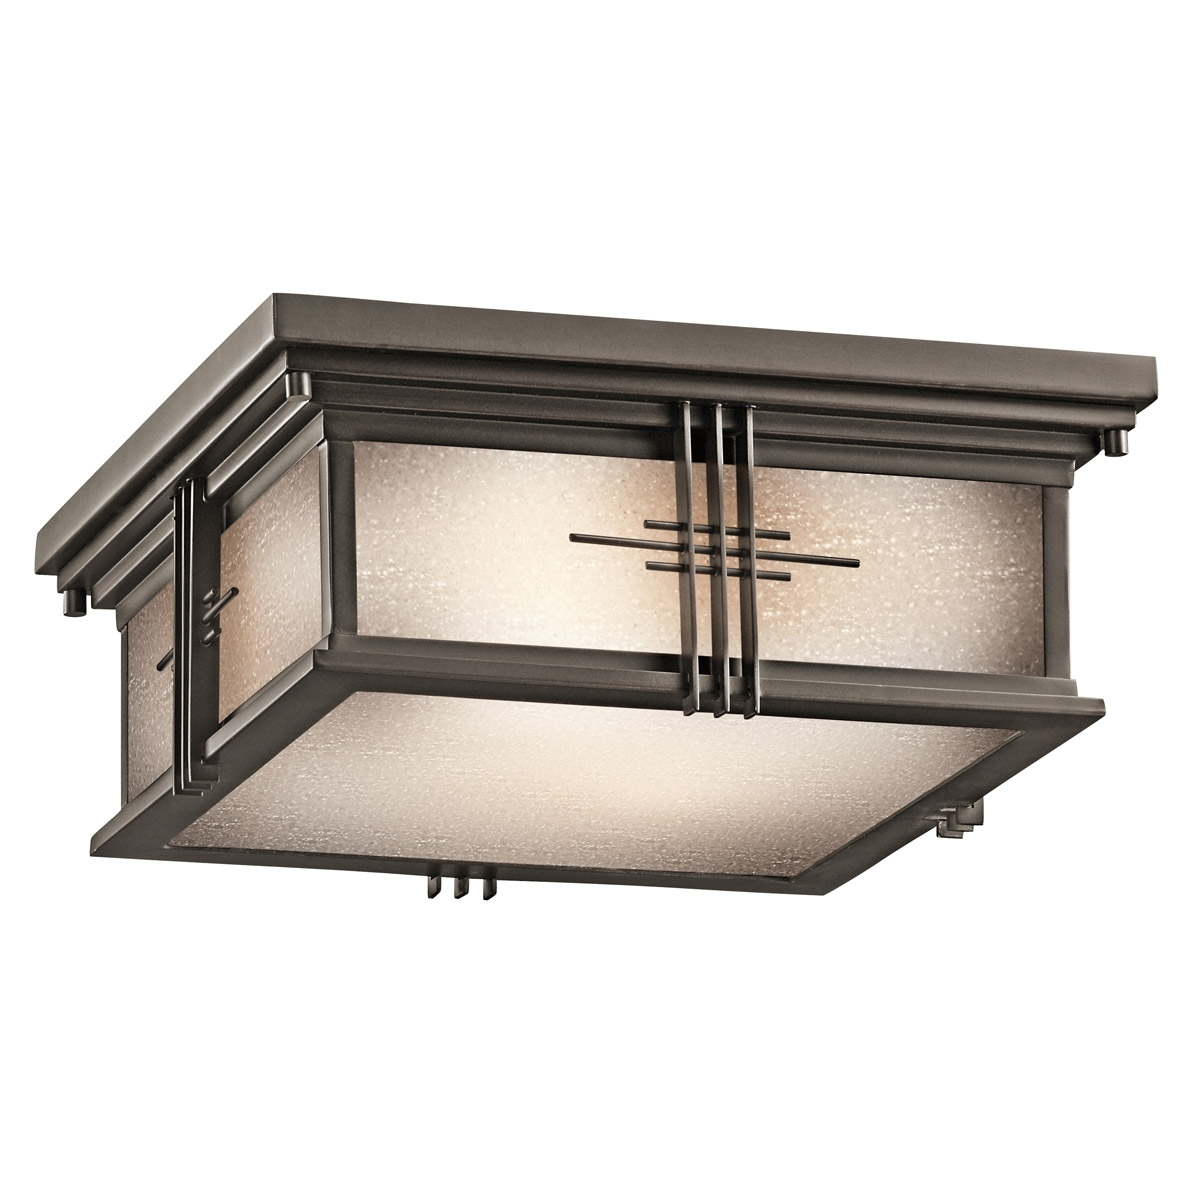 Inspiration about 49164Oz Portman Square Outdoor Flush Mount Ceiling Fixture With Regard To Outdoor Ceiling Mounted Lights (#13 of 15)